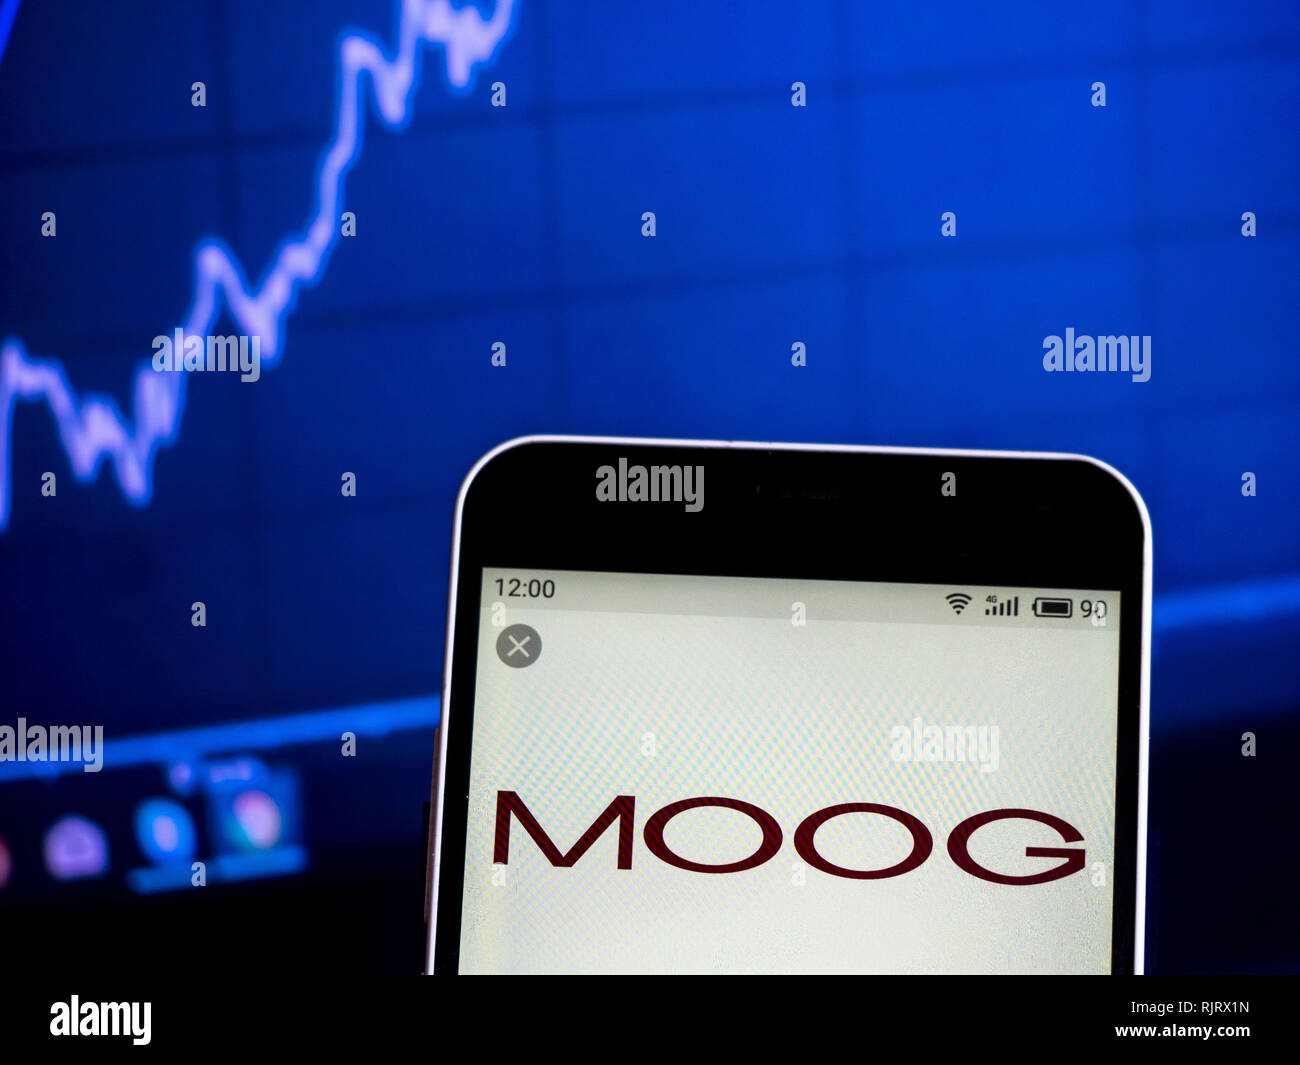 Ukraine. 7th Feb, 2019. Moog Inc. Aerospace and defense company logo seen displayed on a smart phone. Credit: Igor Golovniov/SOPA Images/ZUMA Wire/Alamy Live News - Stock Image